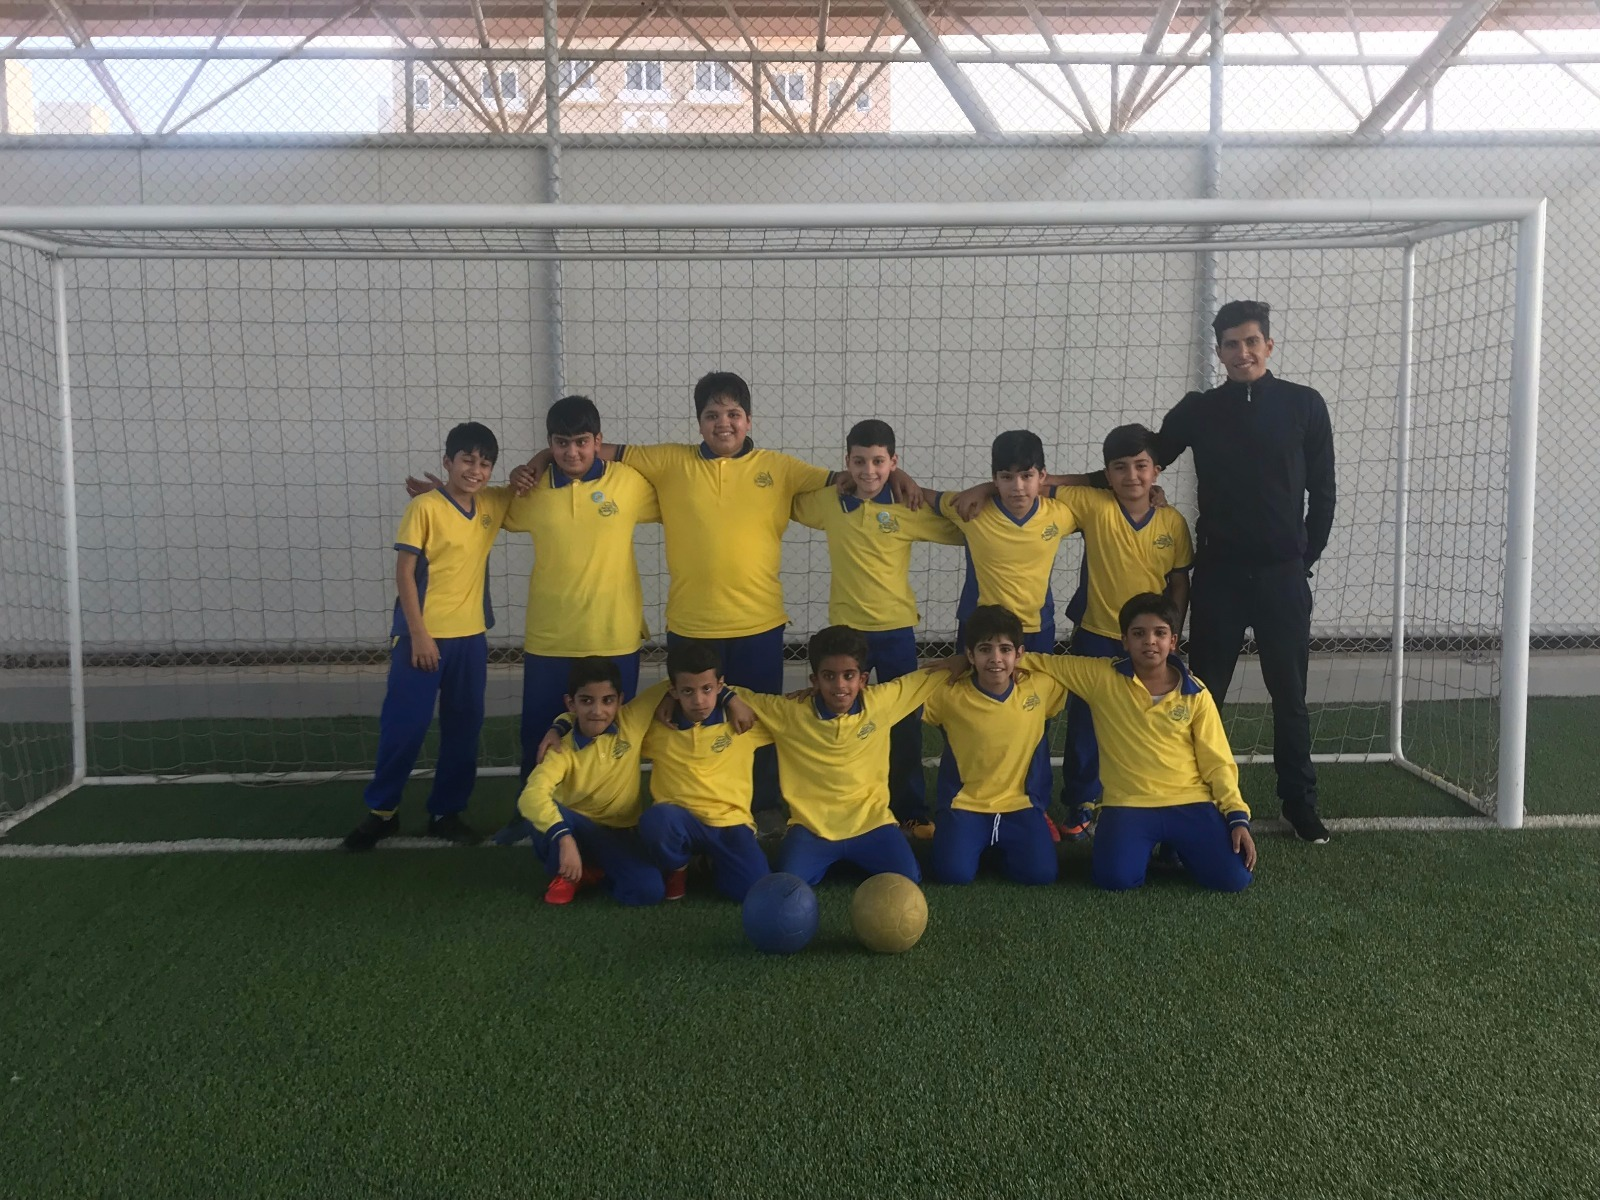 Soccer win for under 10 Al-Noor against AUS 17-0! - Image 4